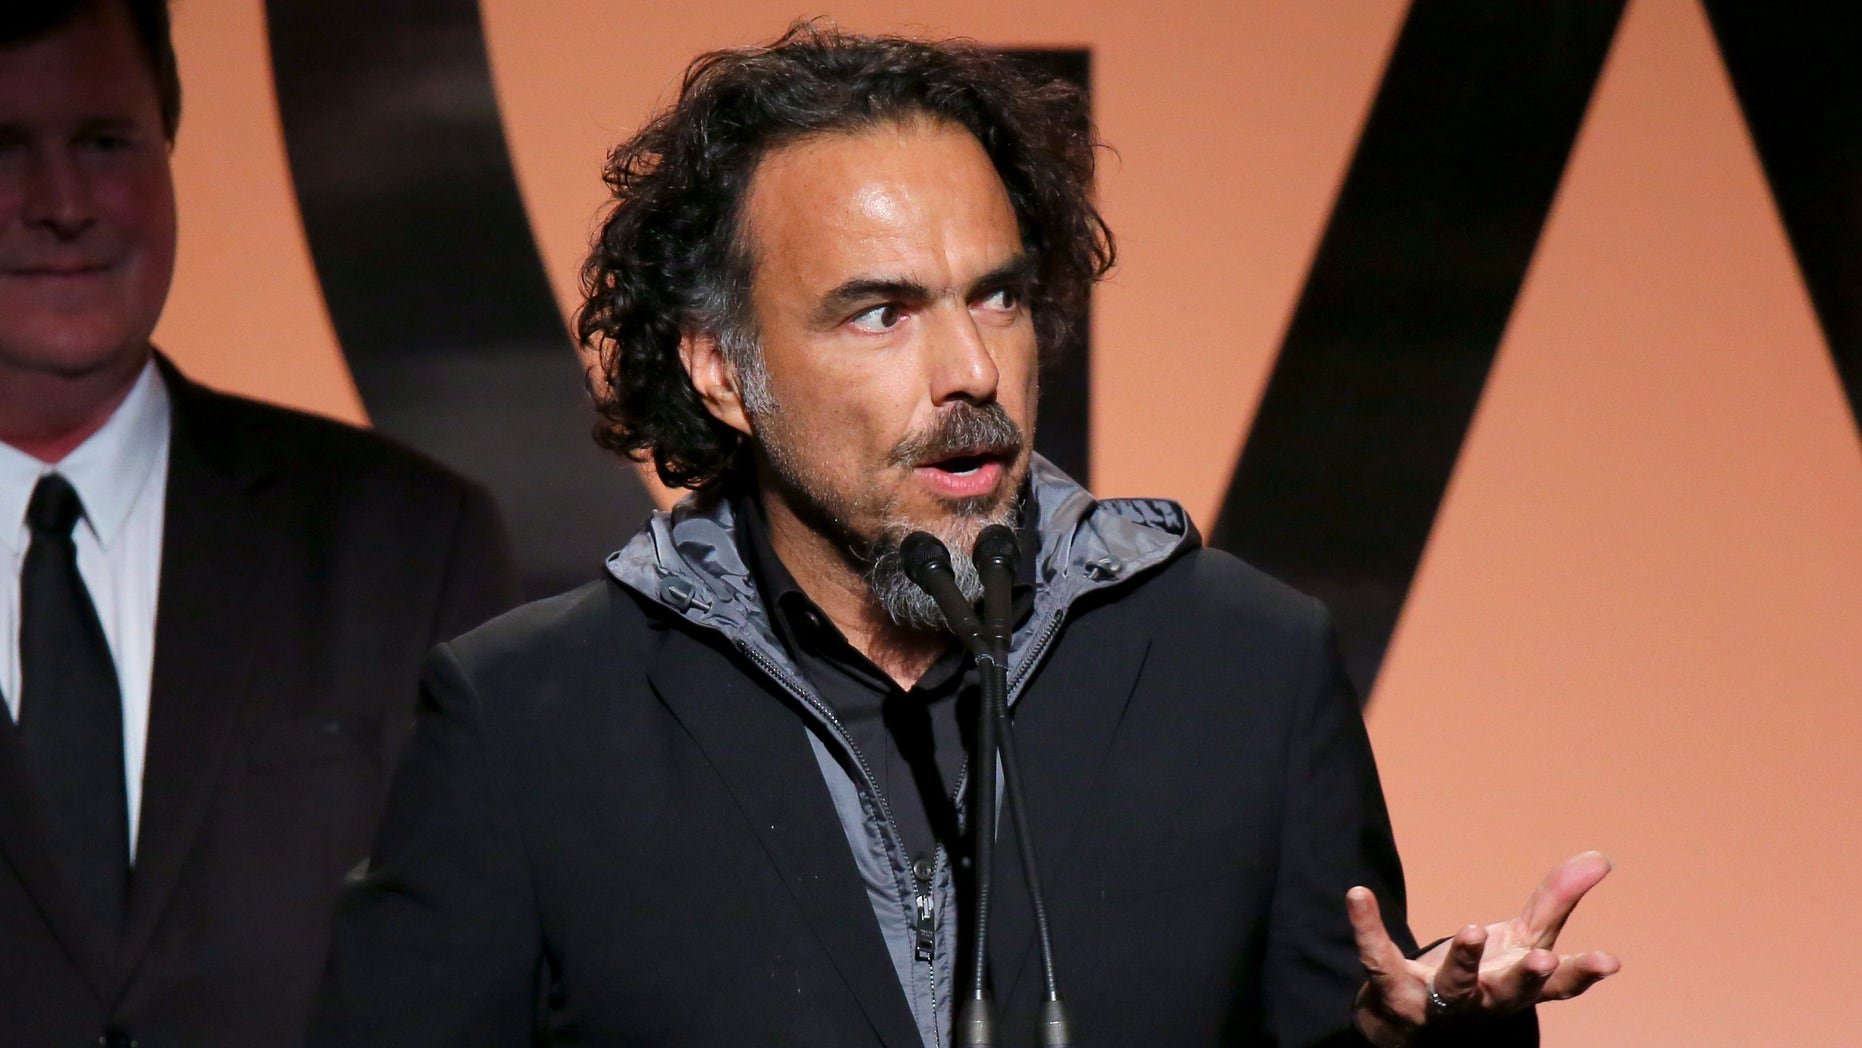 LOS ANGELES, CA - JANUARY 24:  Producer/director Alejandro Gonzalez Inarritu accepts the Outstanding Producer of Theatrical Motion Pictures award for 'Birdman' onstage during the 26th Annual Producers Guild Of America Awards at the Hyatt Regency Century Plaza on January 24, 2015 in Los Angeles, California.  (Photo by Mark Davis/Getty Images)